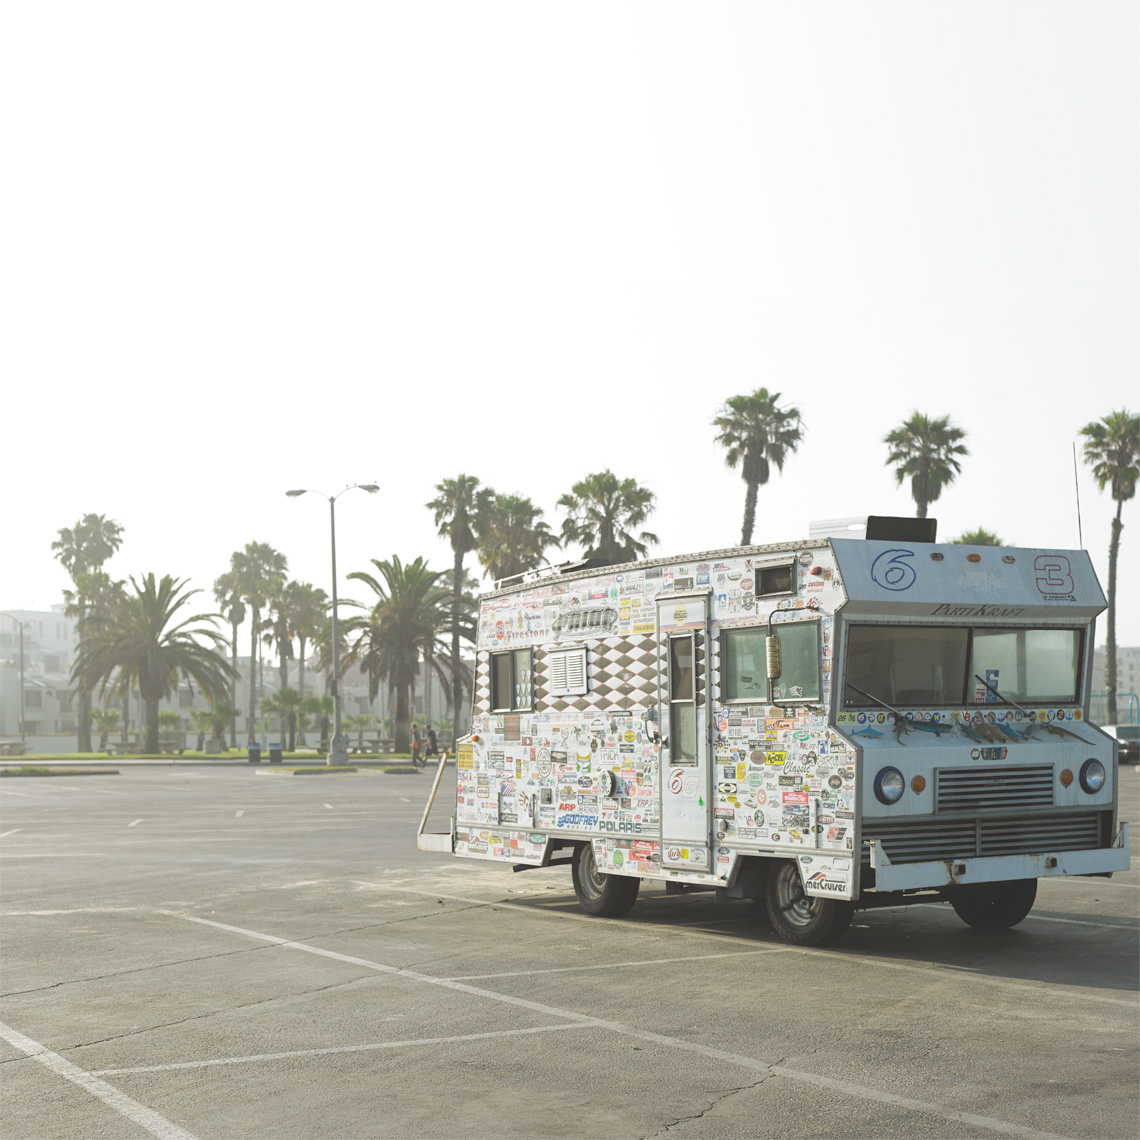 Santa Monica Parking Lot RV Lindsay Siu Photographer Commercial Editorial Advertising Photography Vancouver